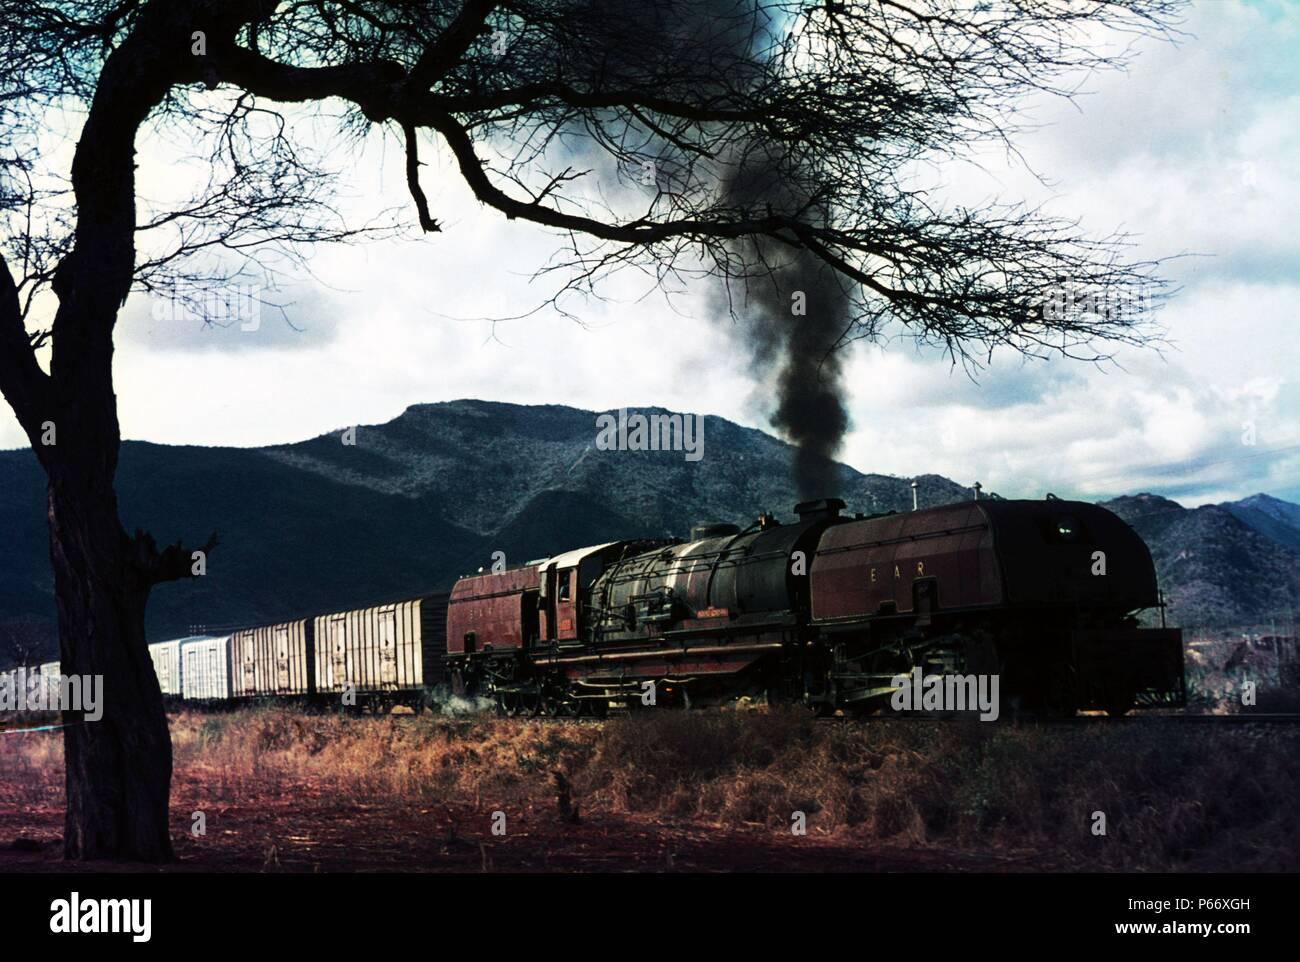 Big game at Voi. One of the world's largest steam engines skirts the edge of the Tsavo Game Reserve in 1973, Built by Beyer Peacock in 1955, The engin - Stock Image